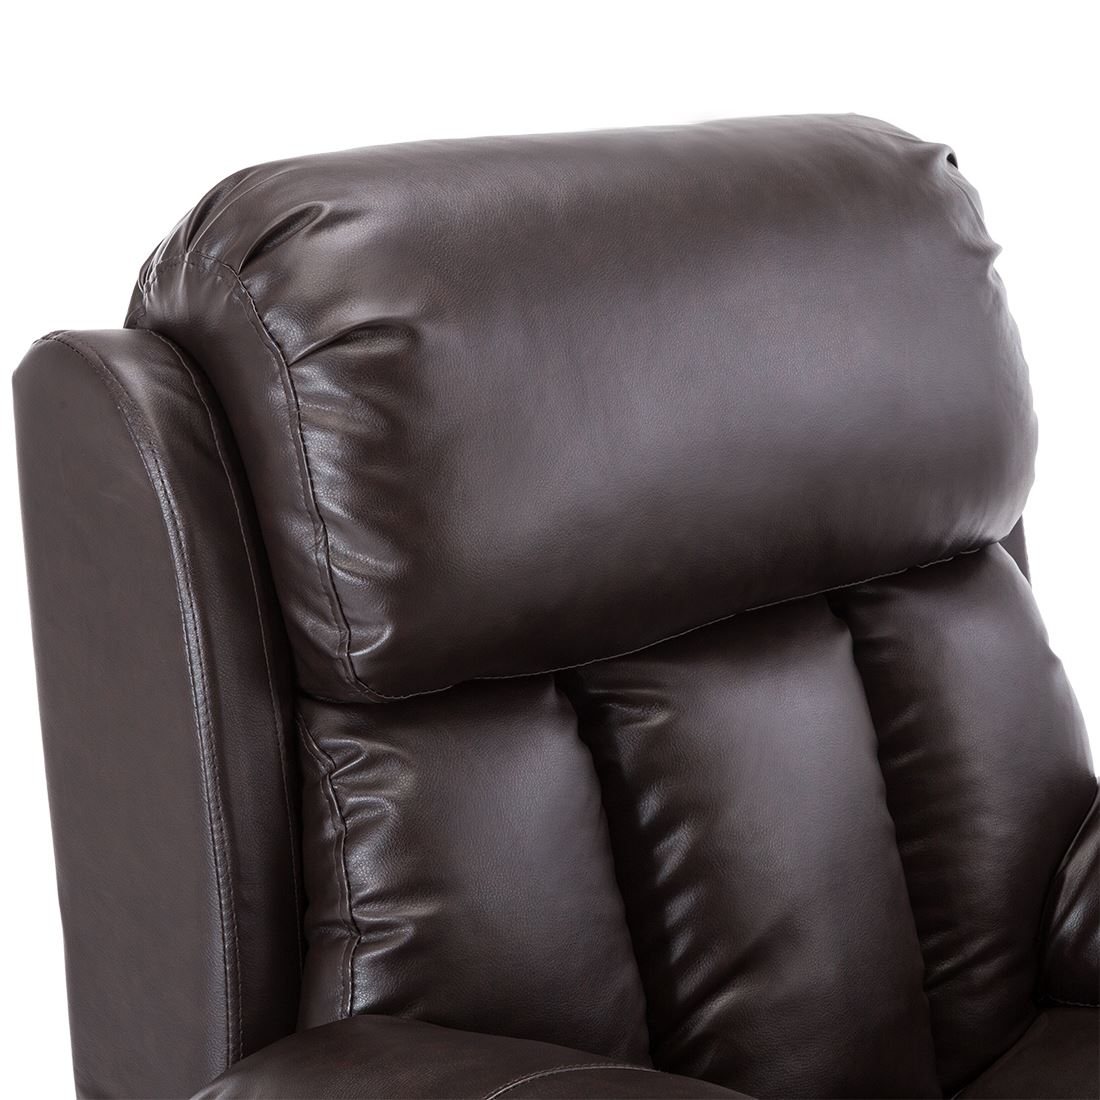 CHESTER-ELECTRIC-RISE-LEATHER-RECLINER-POWER-ARMCHAIR-HEATED-MASSAGE-SOFA-CHAIR thumbnail 16